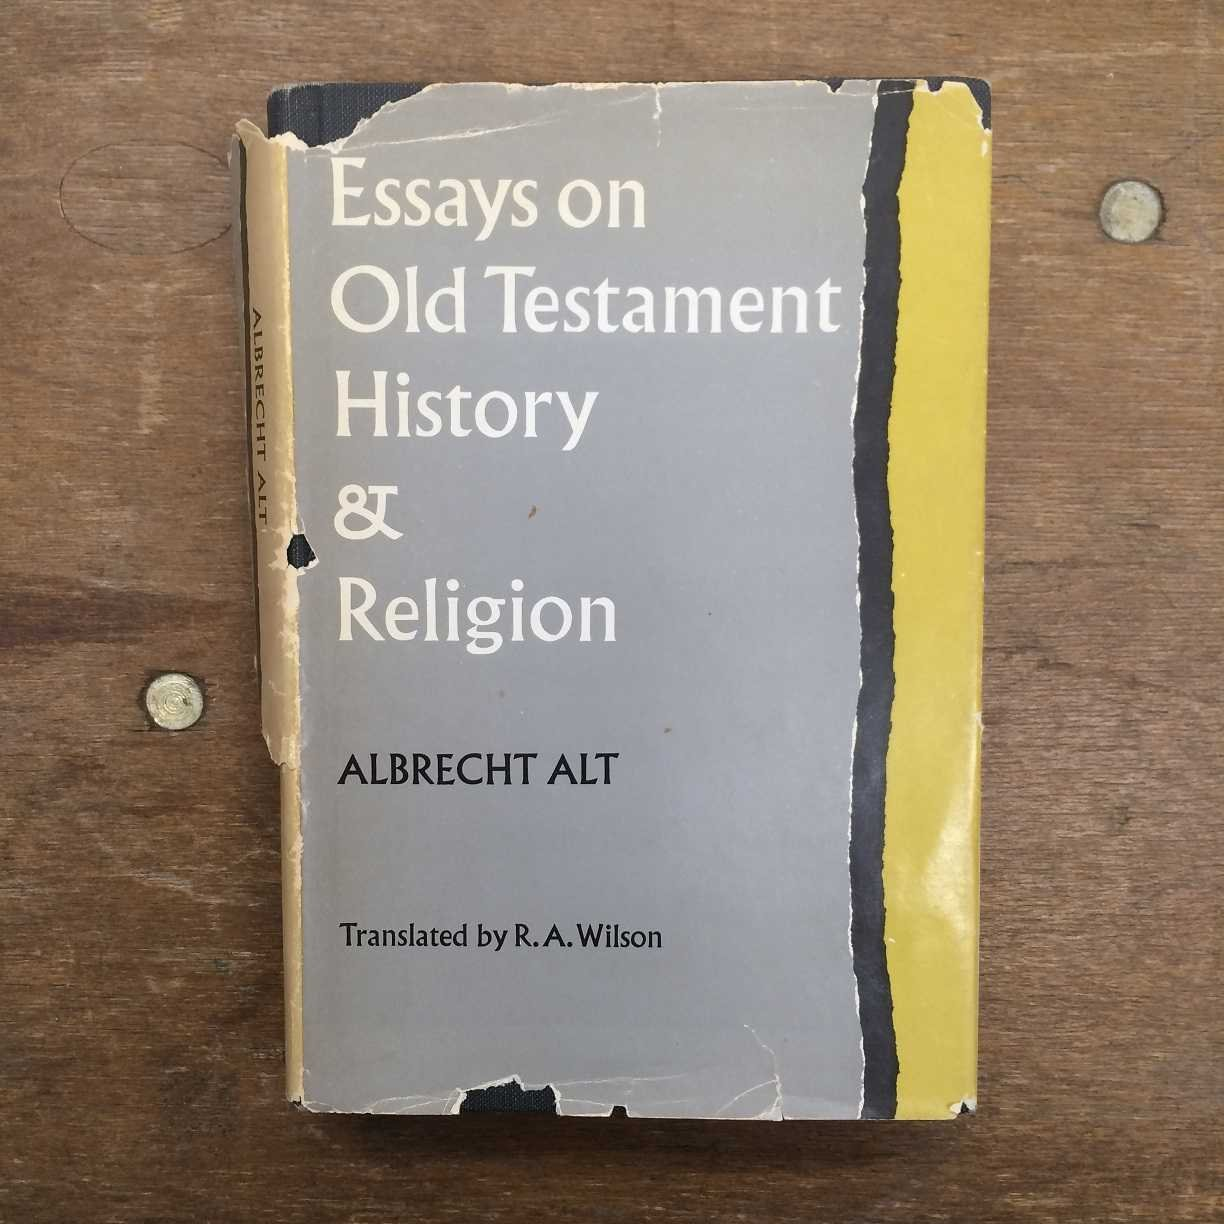 essays on old testament history and religion albrecht alt  essays on old testament history and religion albrecht alt com books